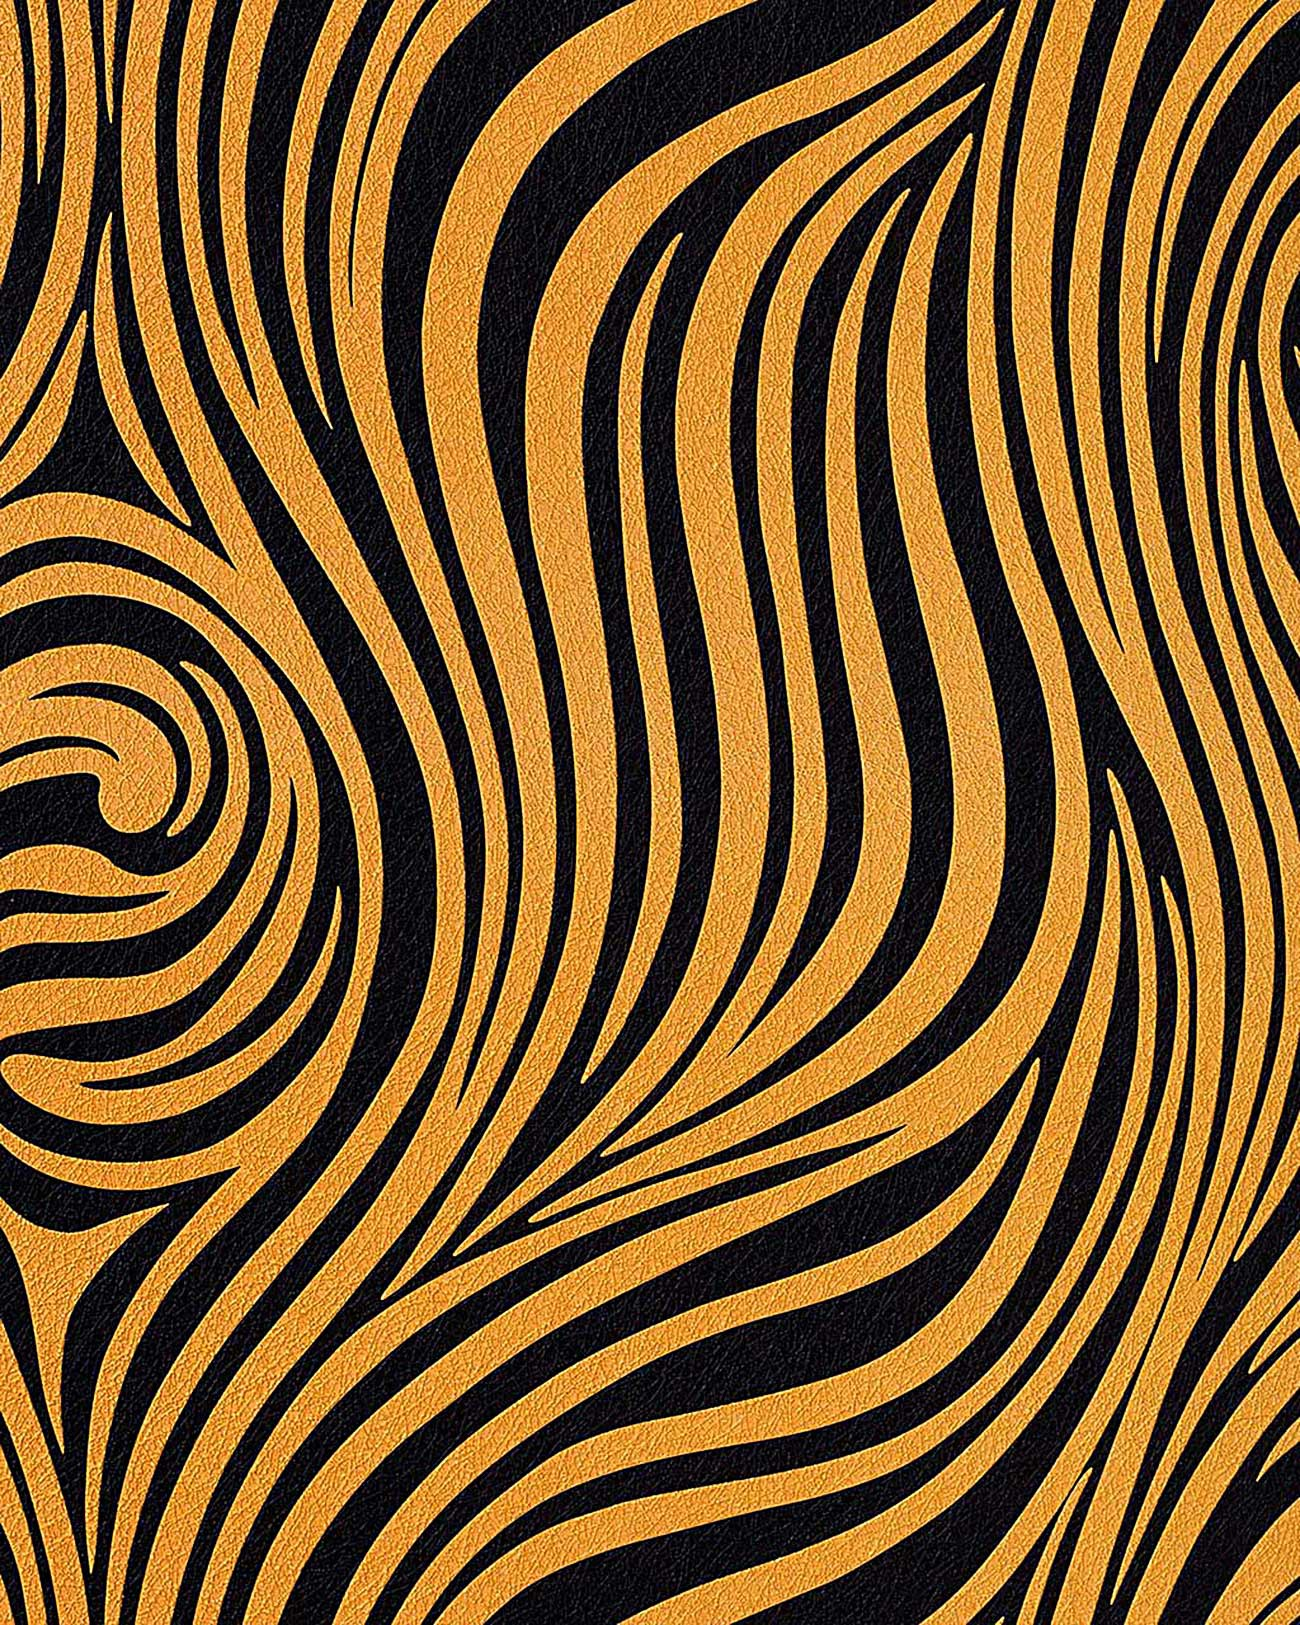 Tapete Wei? Gelb Gestreift : Gold Zebra Stripes Background